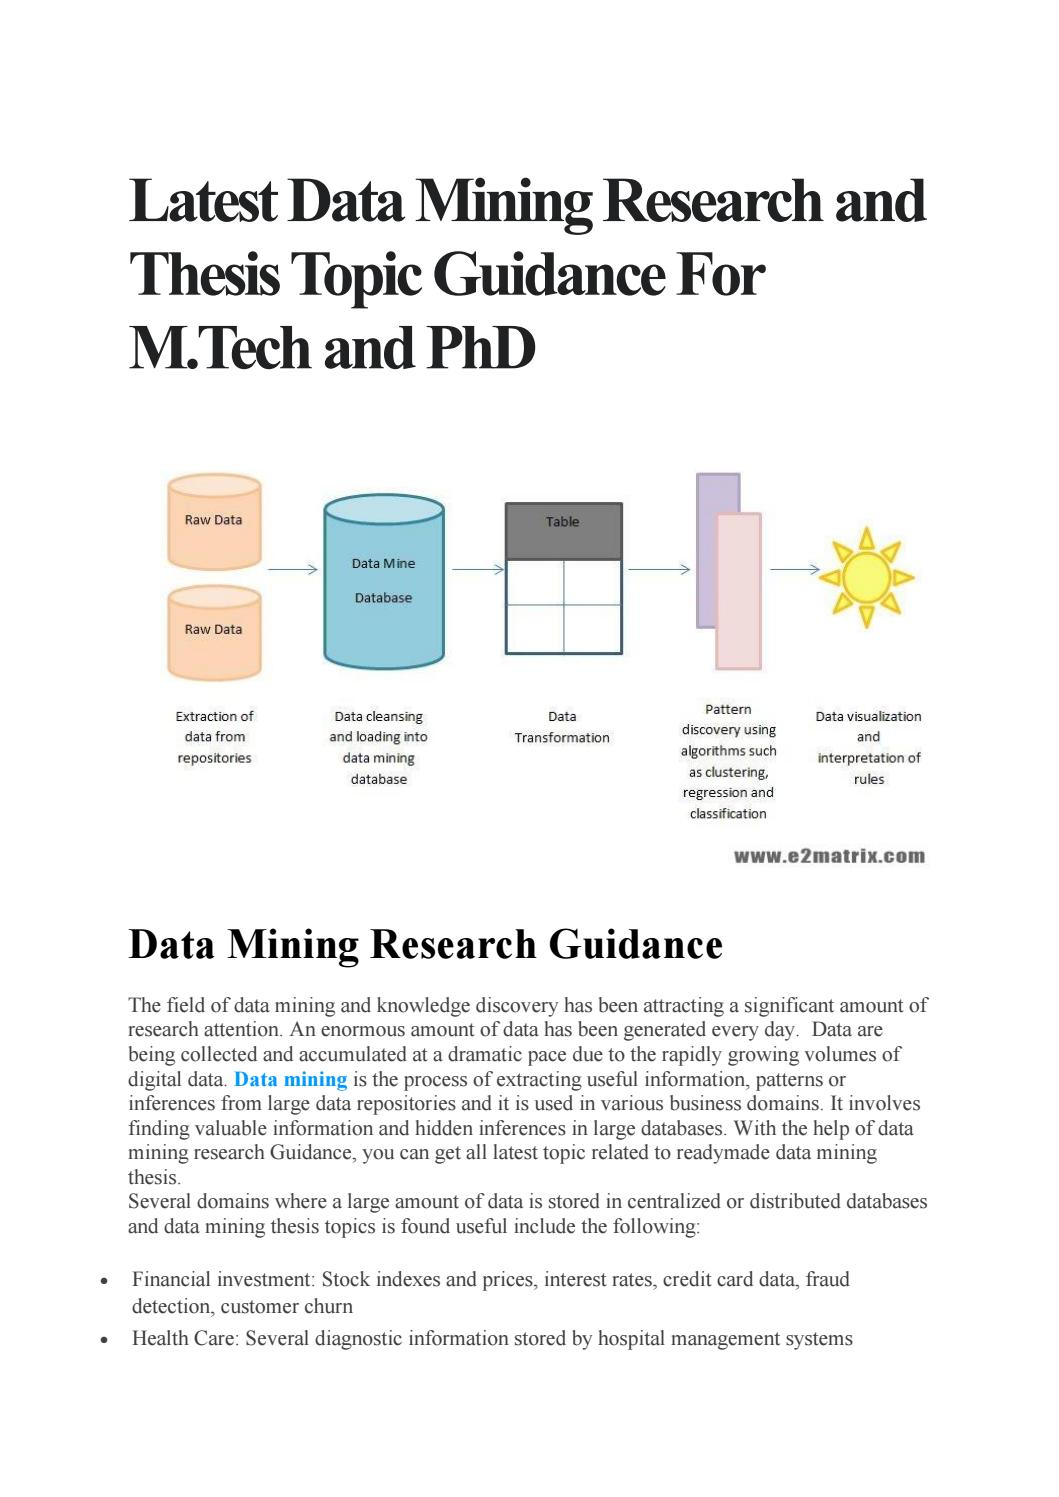 data mining thesis for m tech